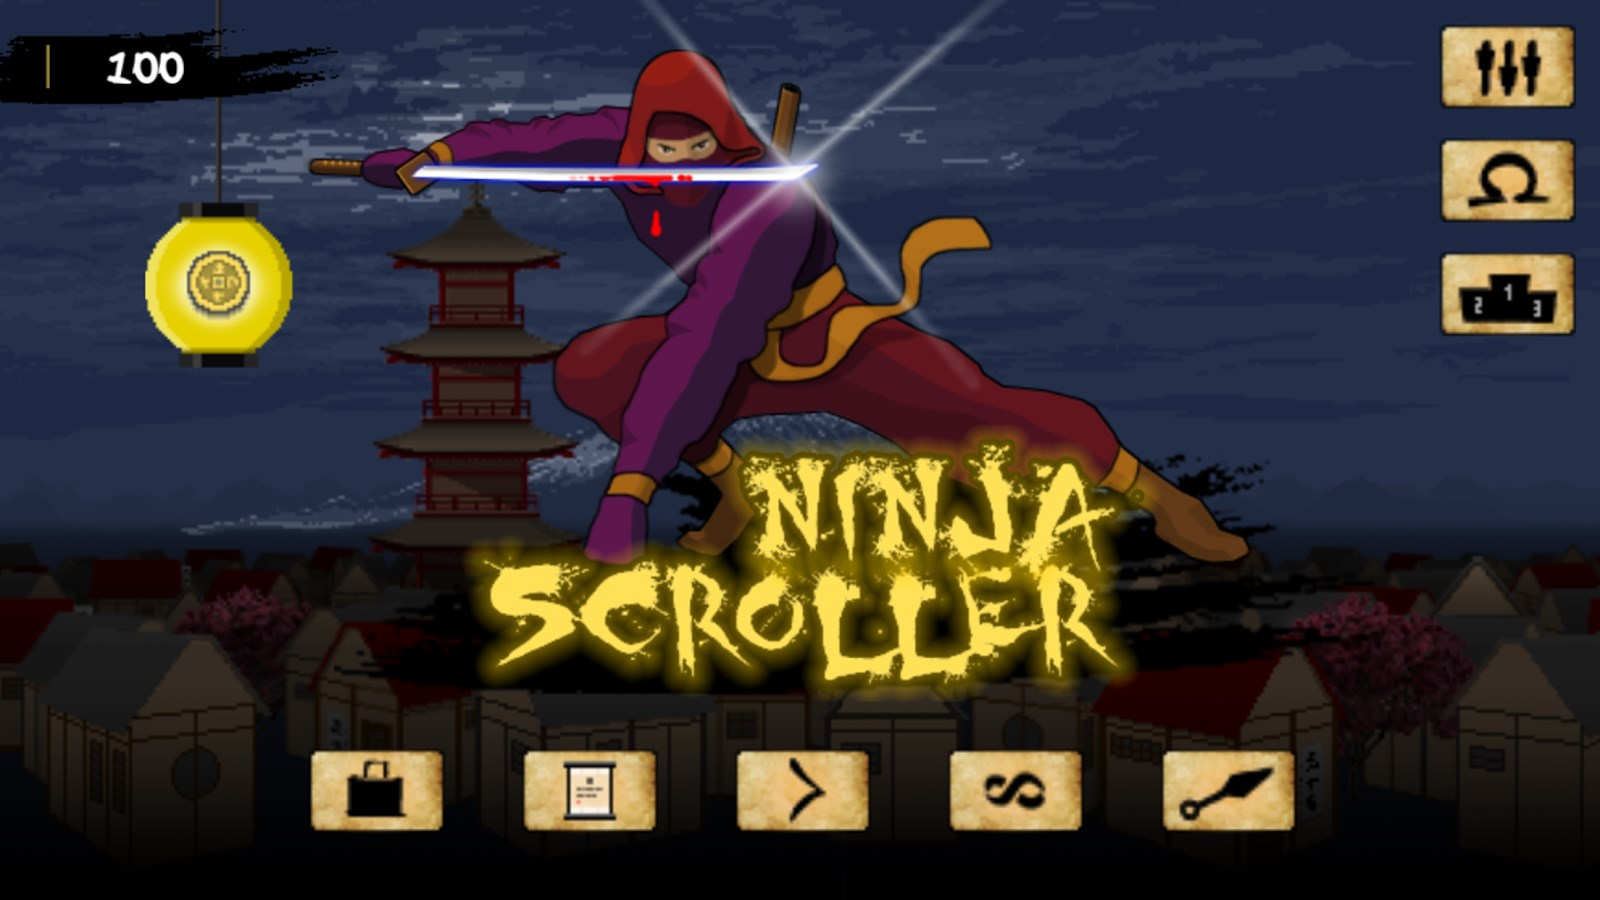 Ninja Scroller: The Awakening - Imagem 1 do software